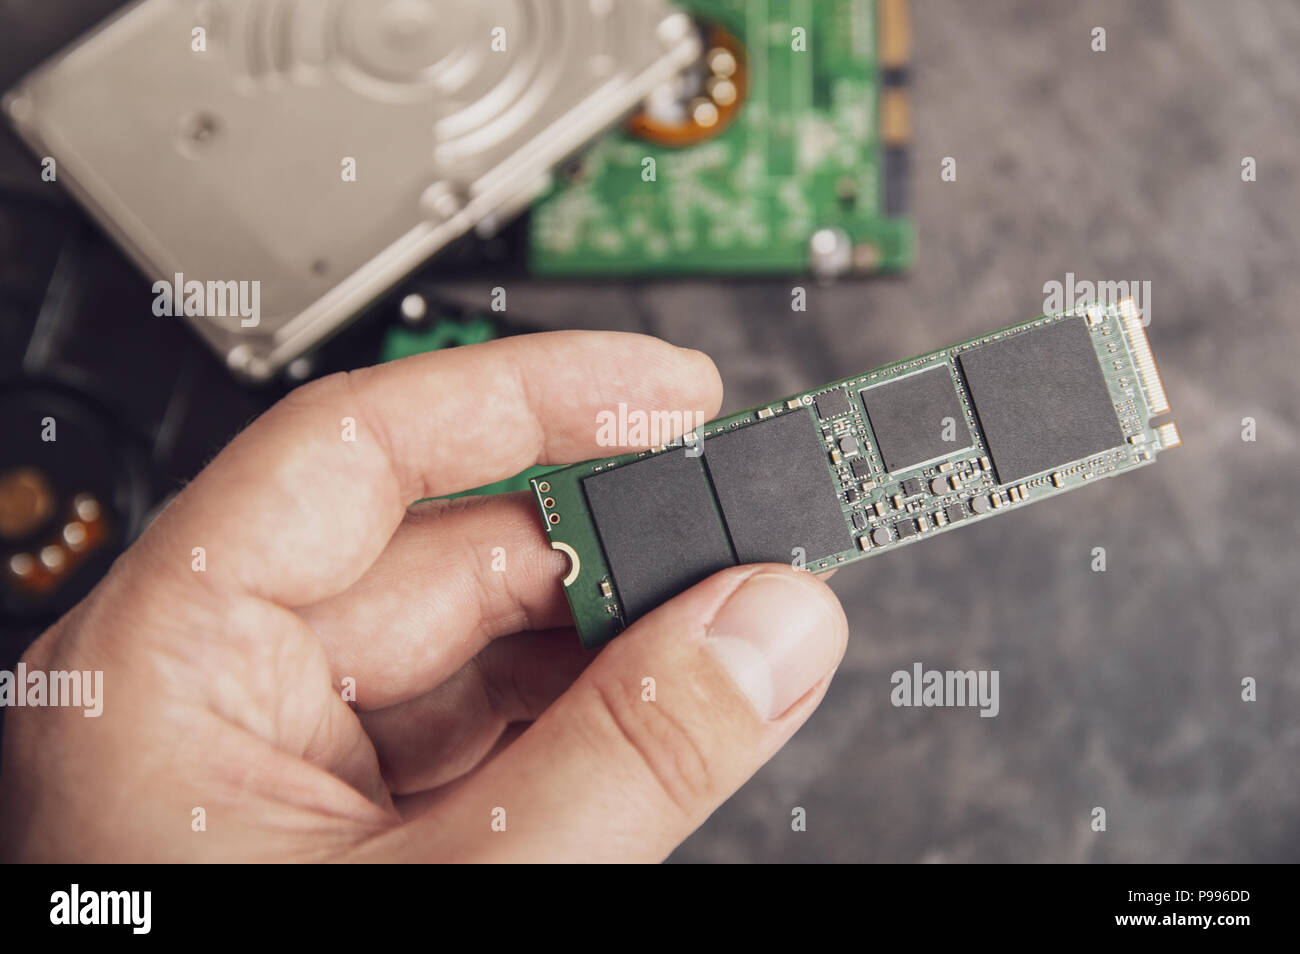 Man's hand holding modern M.2 drive with an old HDD disks in the background - Stock Image